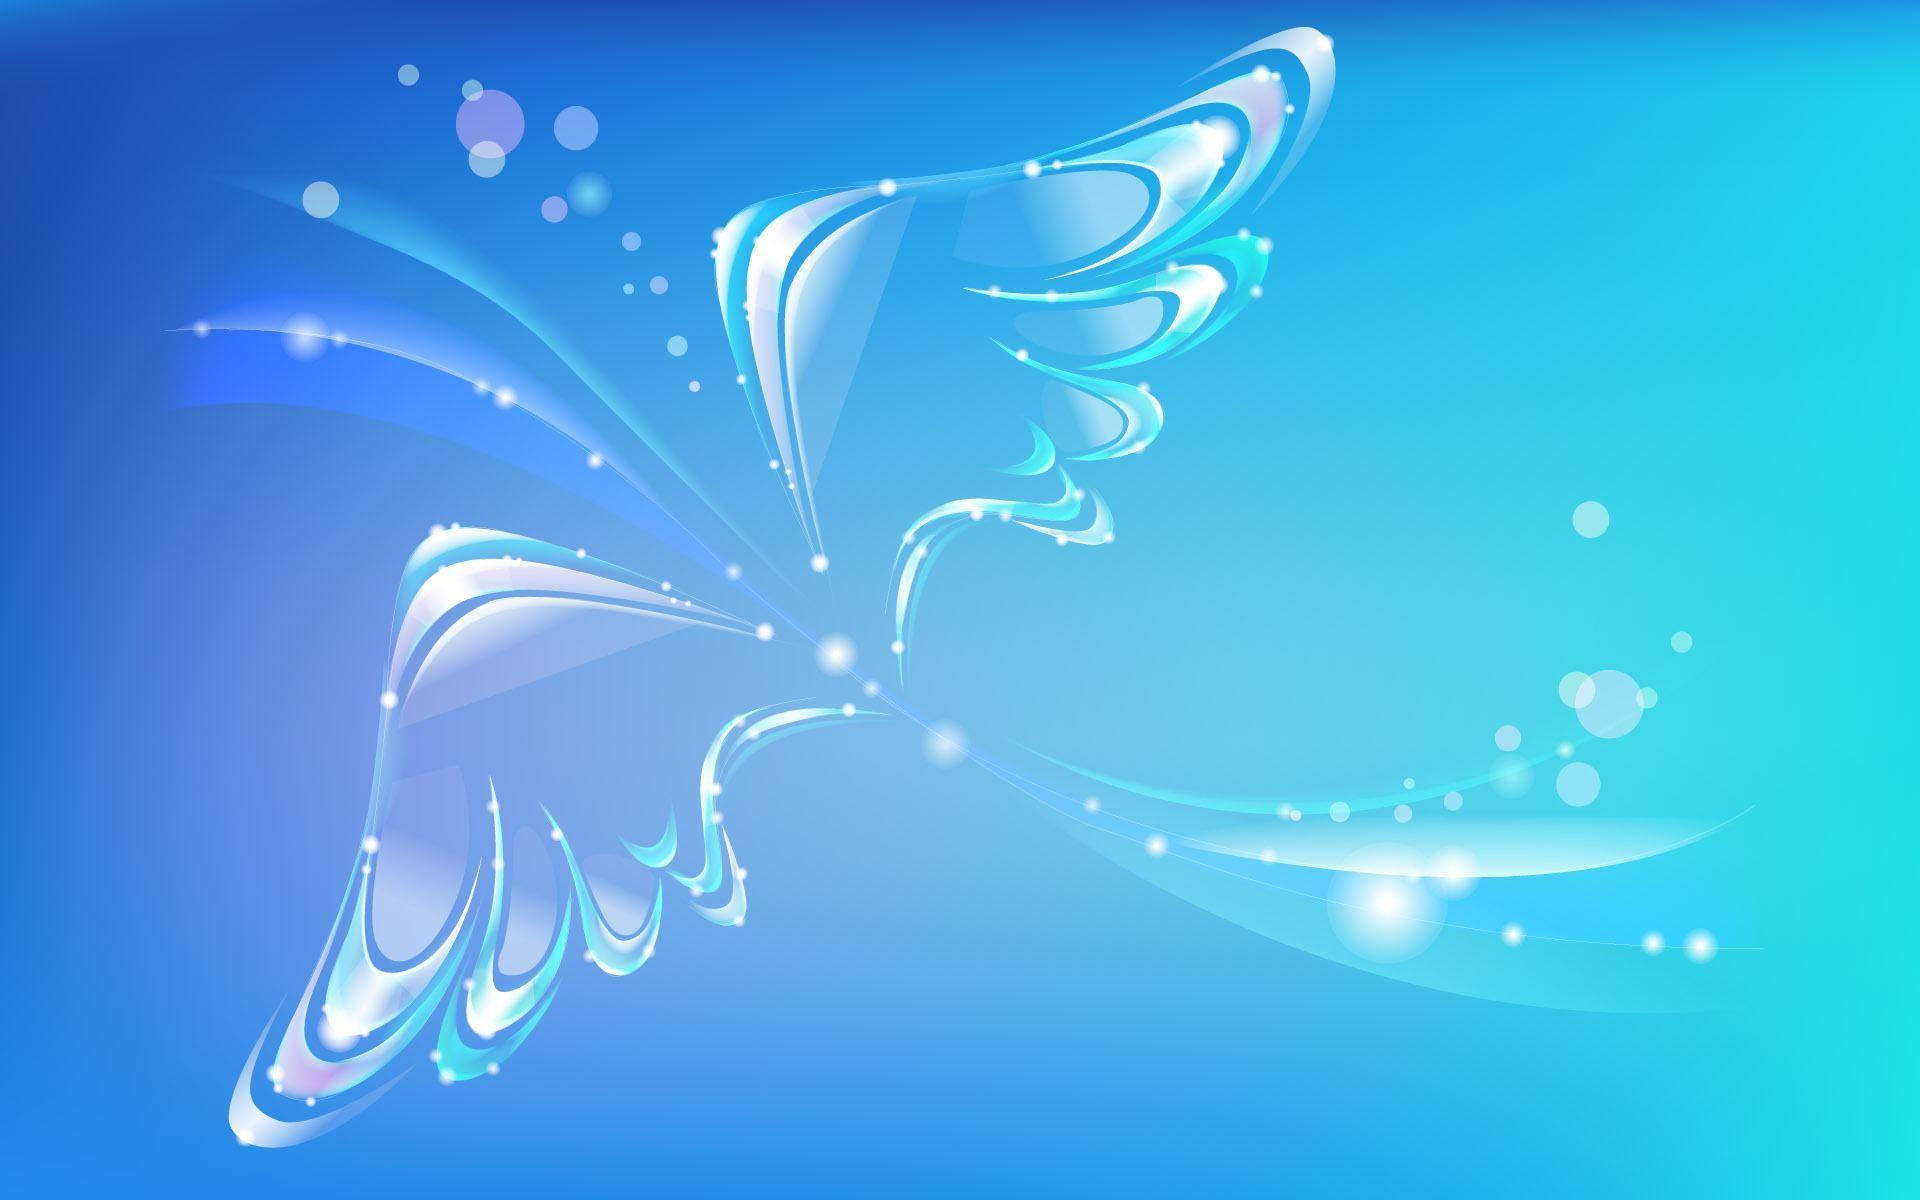 Blue Butterfly Backgrounds - Wallpaper Cave